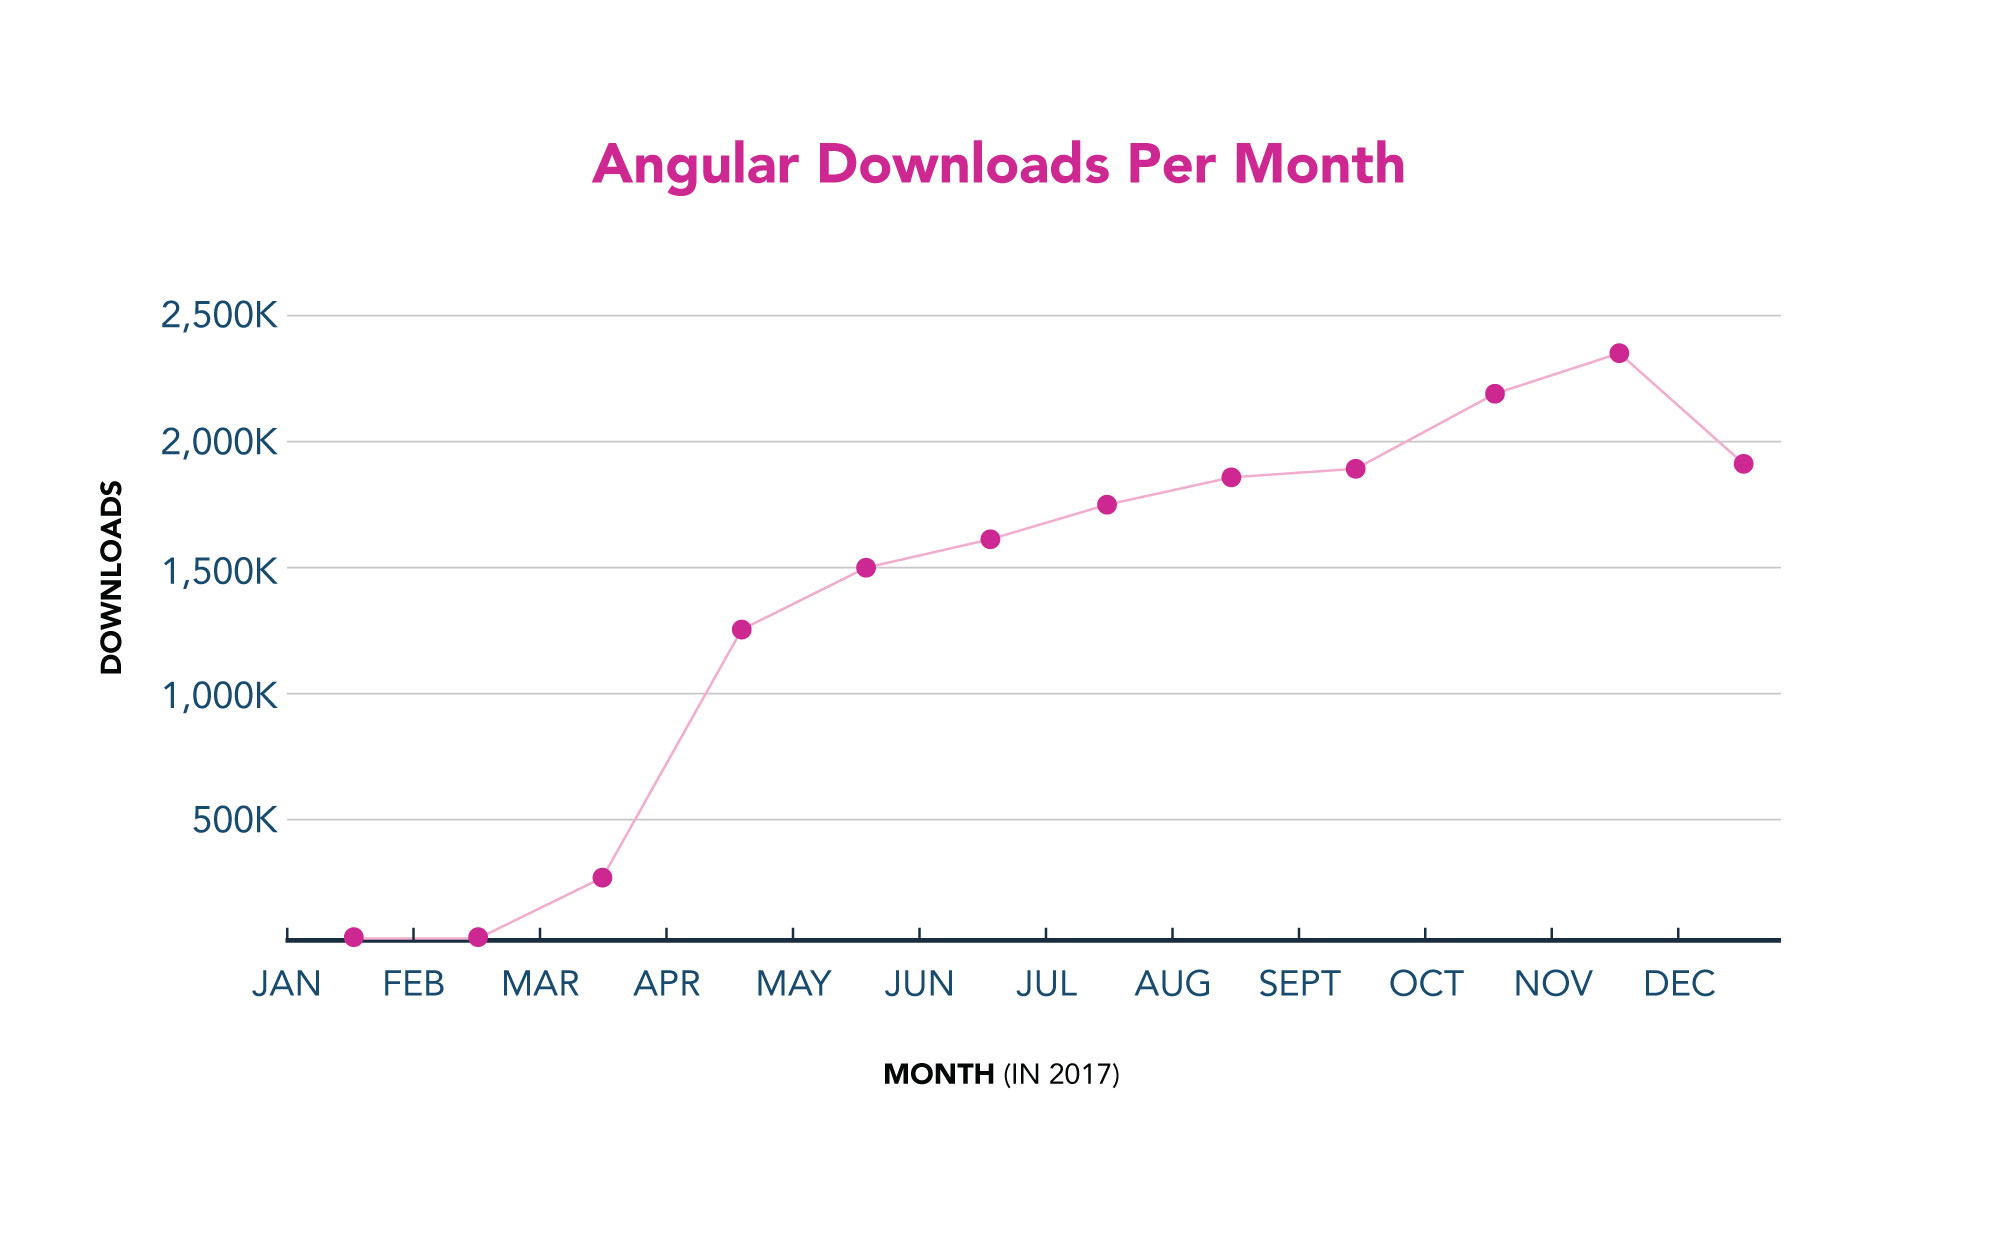 Angular Downloads Per Month